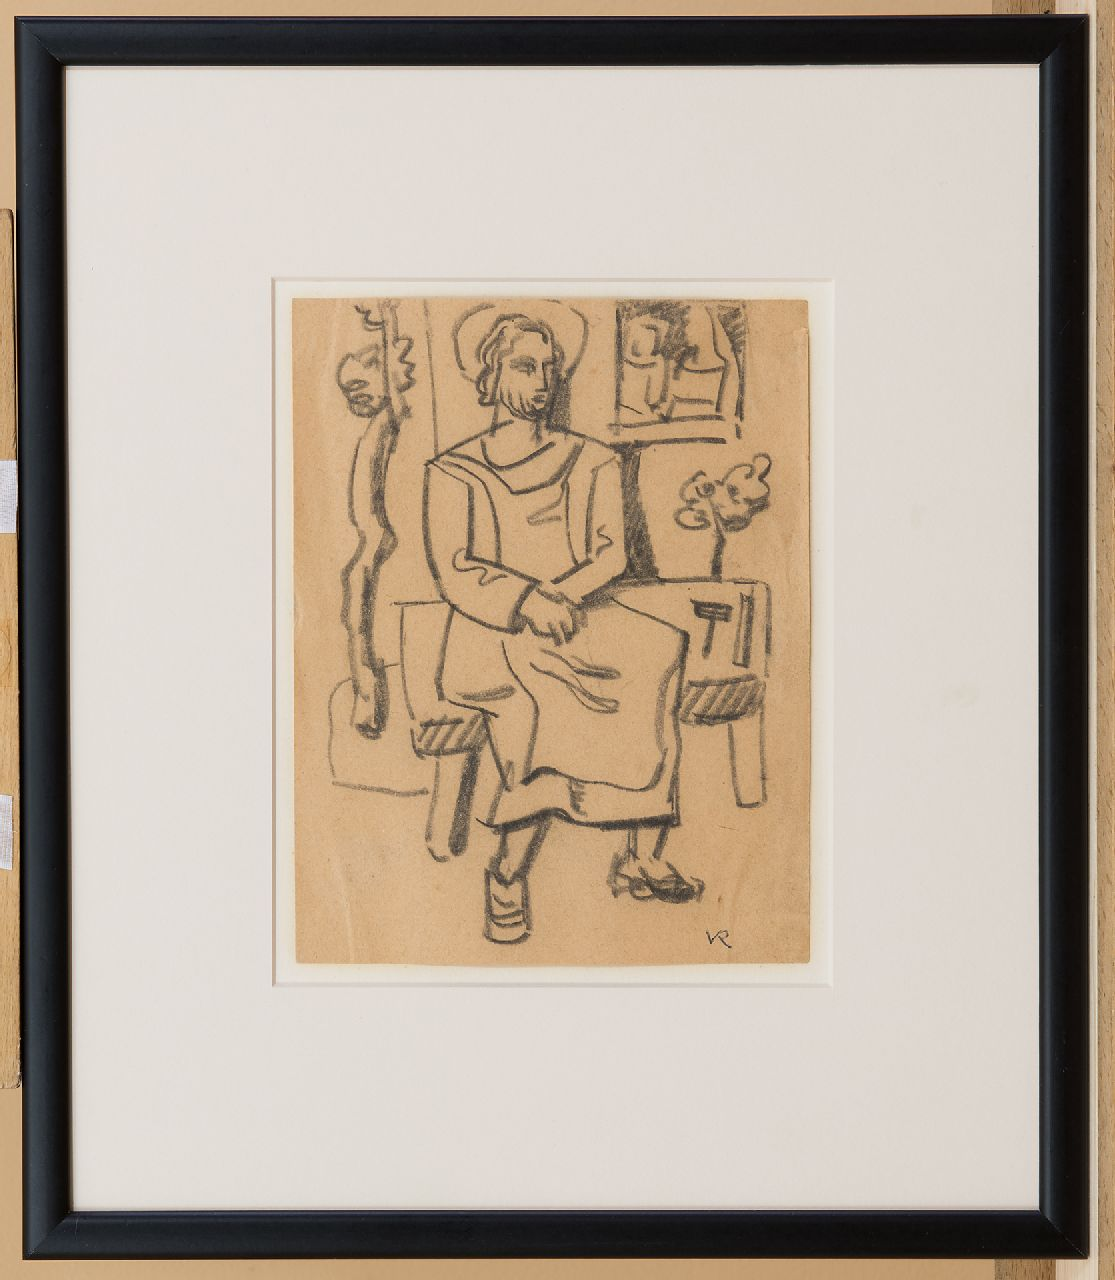 Rees O. van | Otto van Rees | Watercolours and other works on paper offered for sale | Seated man, black chalk on paper 19.5 x 15.5 cm, signed l.r. with monogram